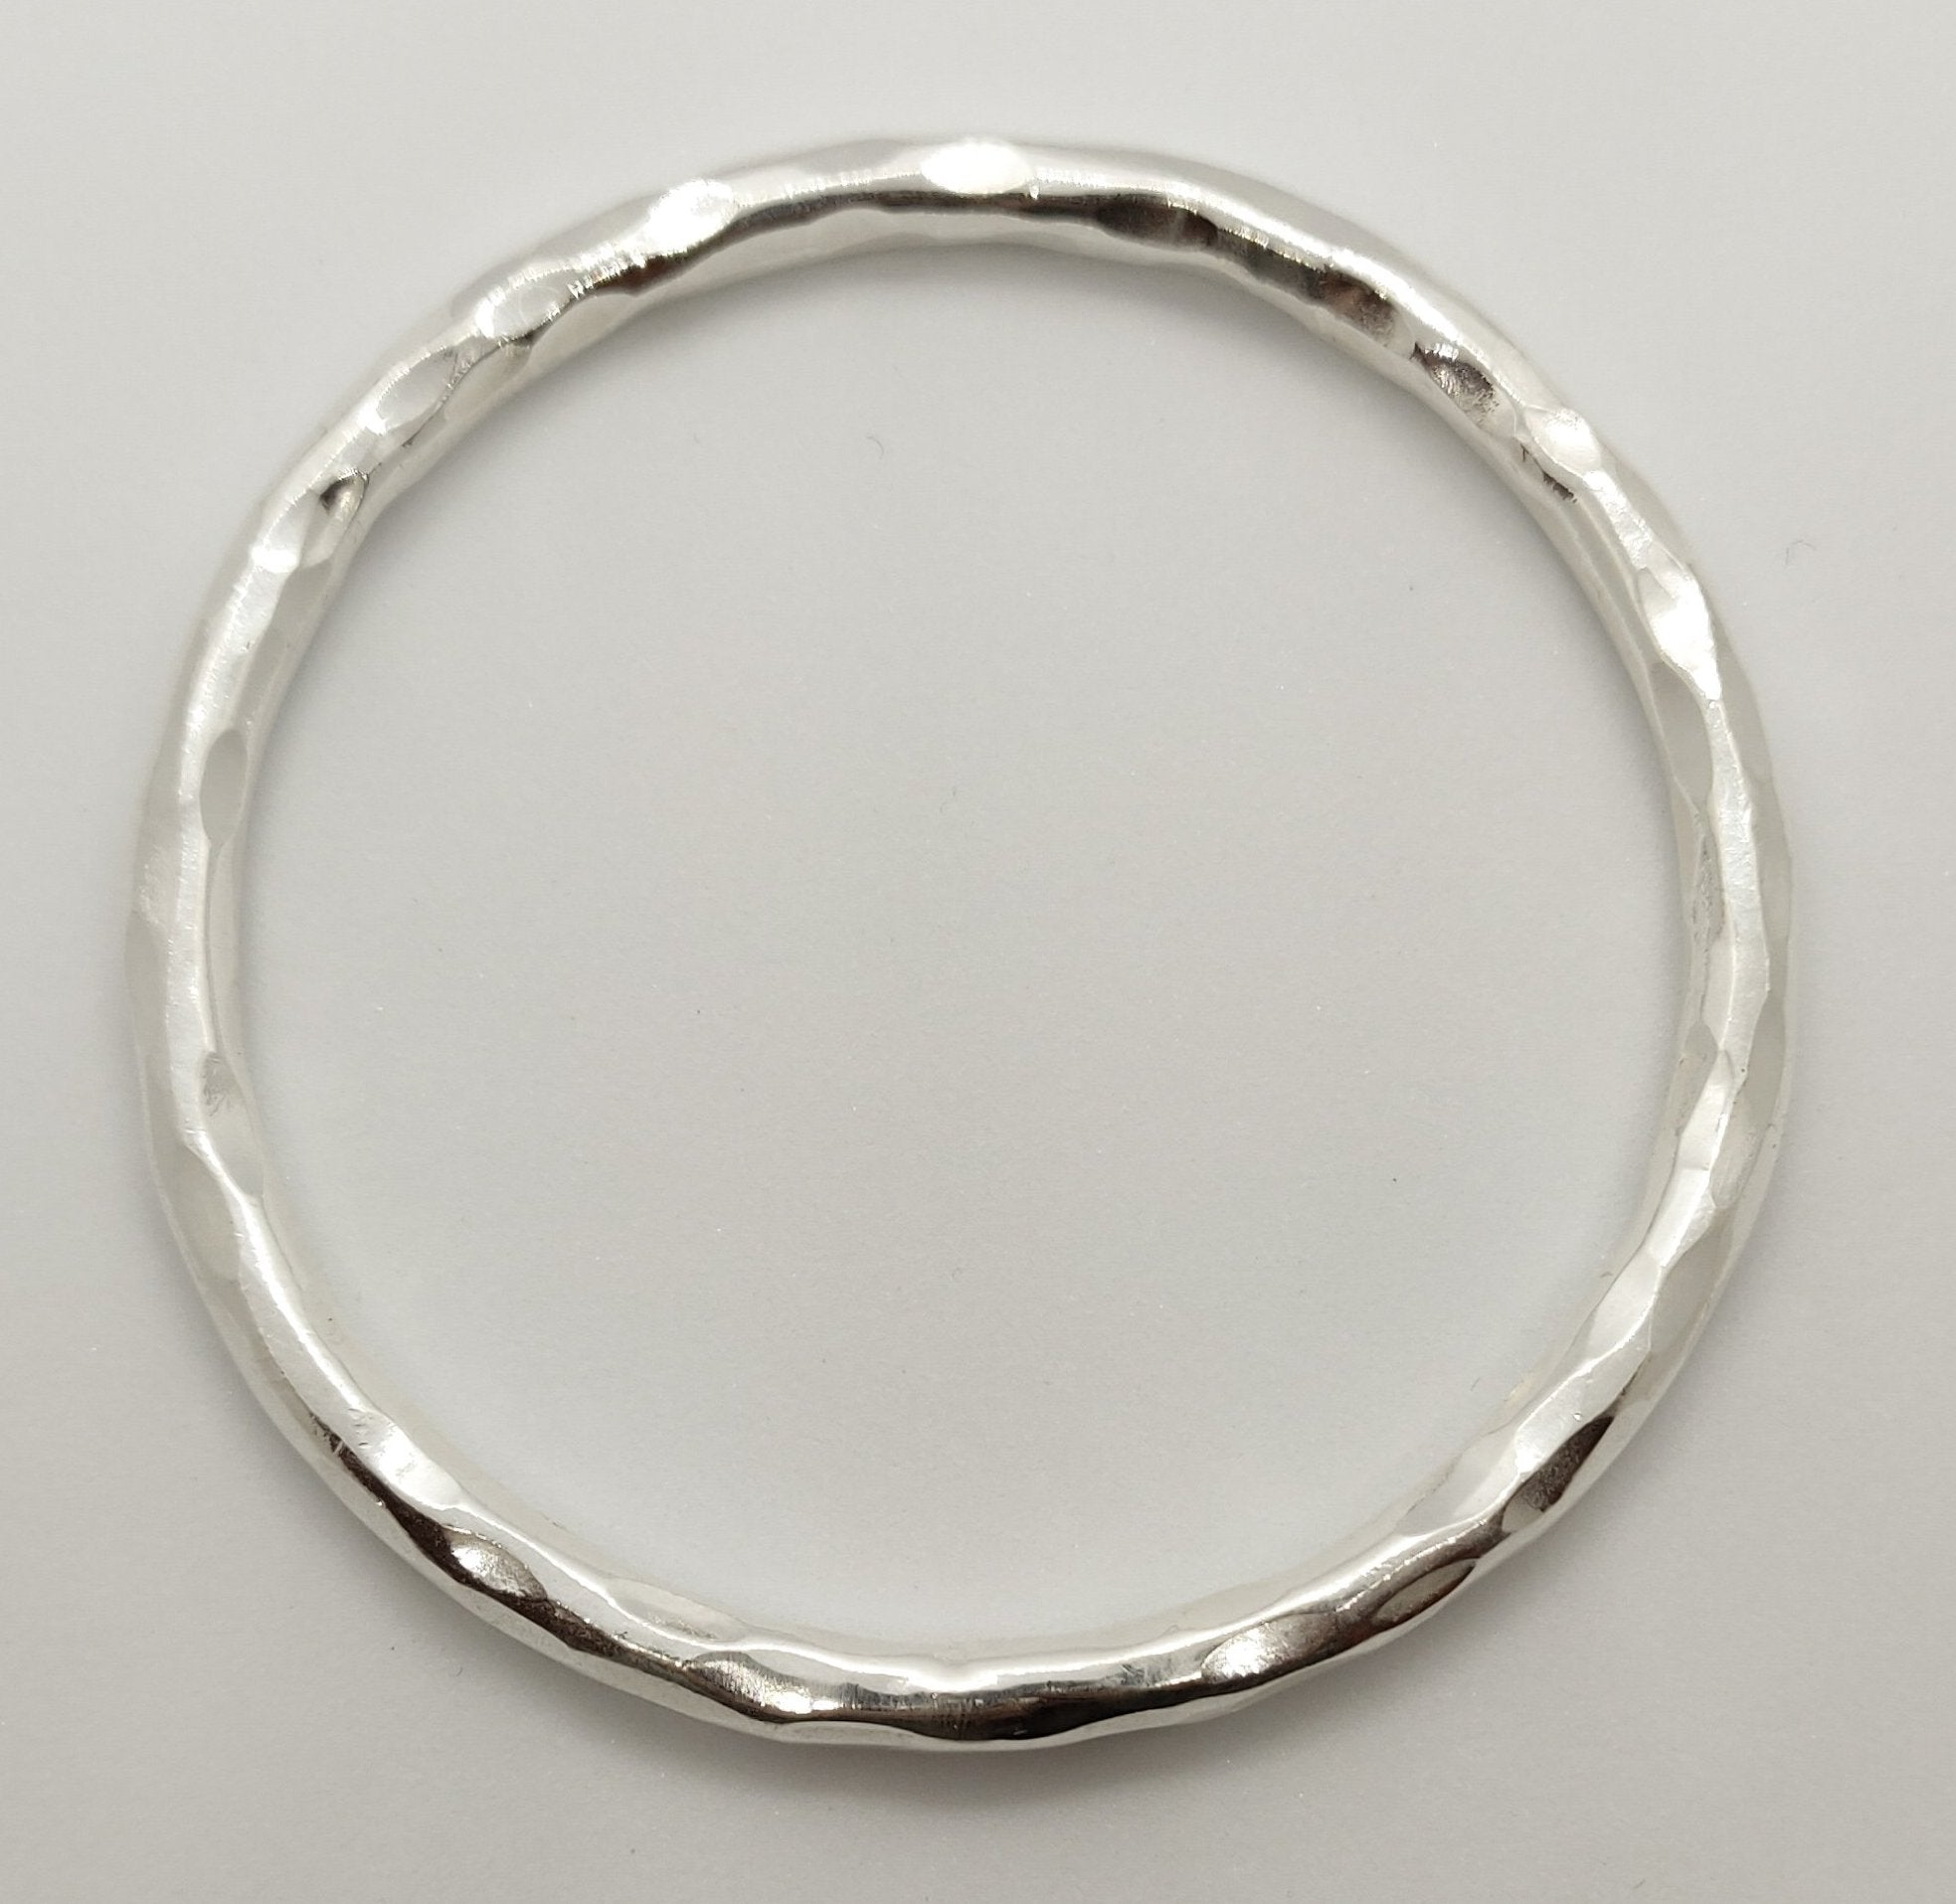 Faceted Hammered Thick Silver Bangle